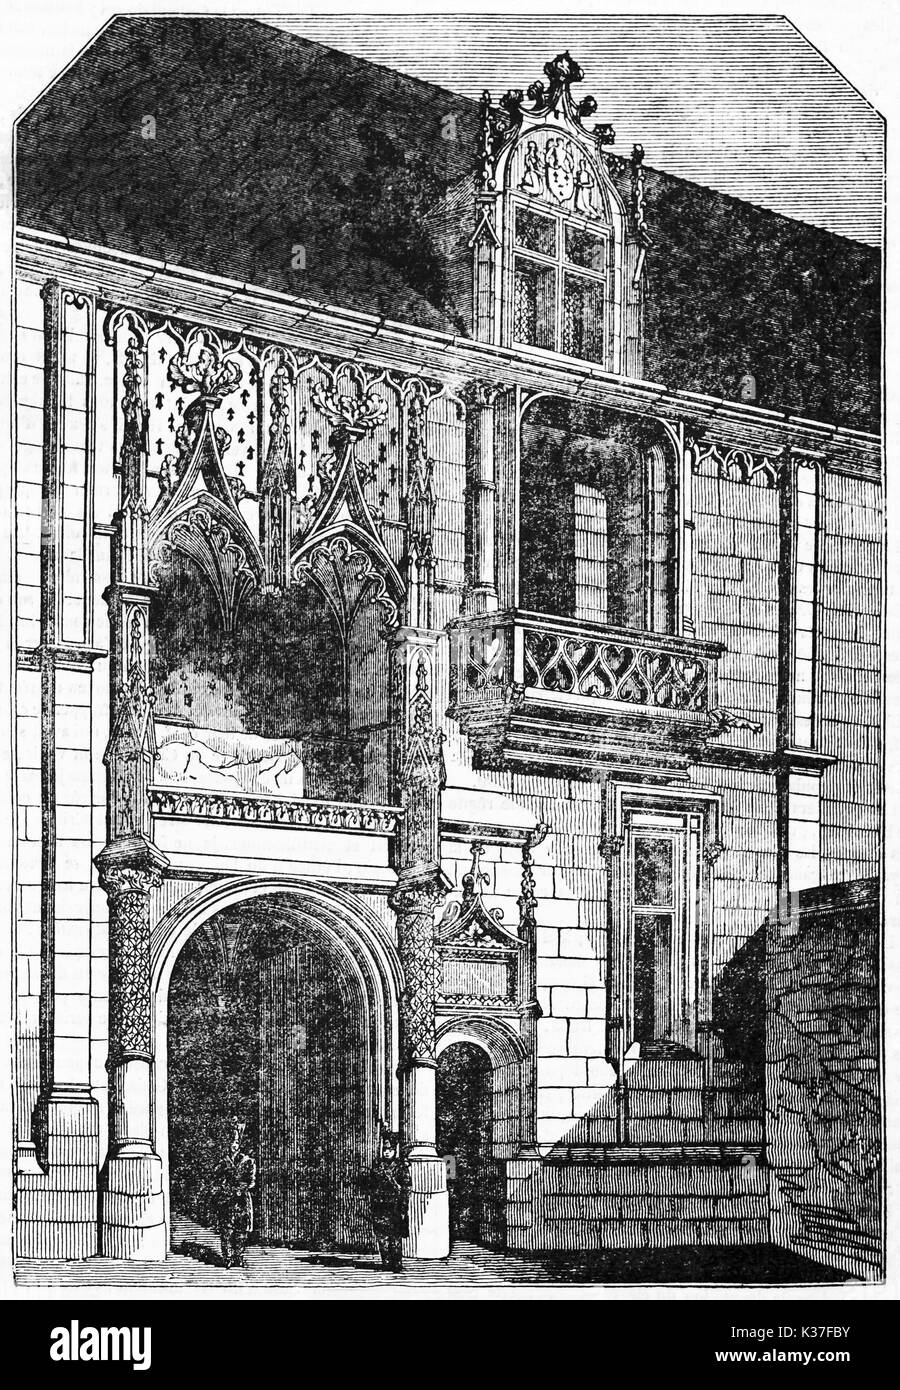 Ancient front view of Blois castle portal (east facade), majestic, elegant and aristocratic architecture. Old Illustration by unidentified author published on Magasin Pittoresque Paris 1834 - Stock Image